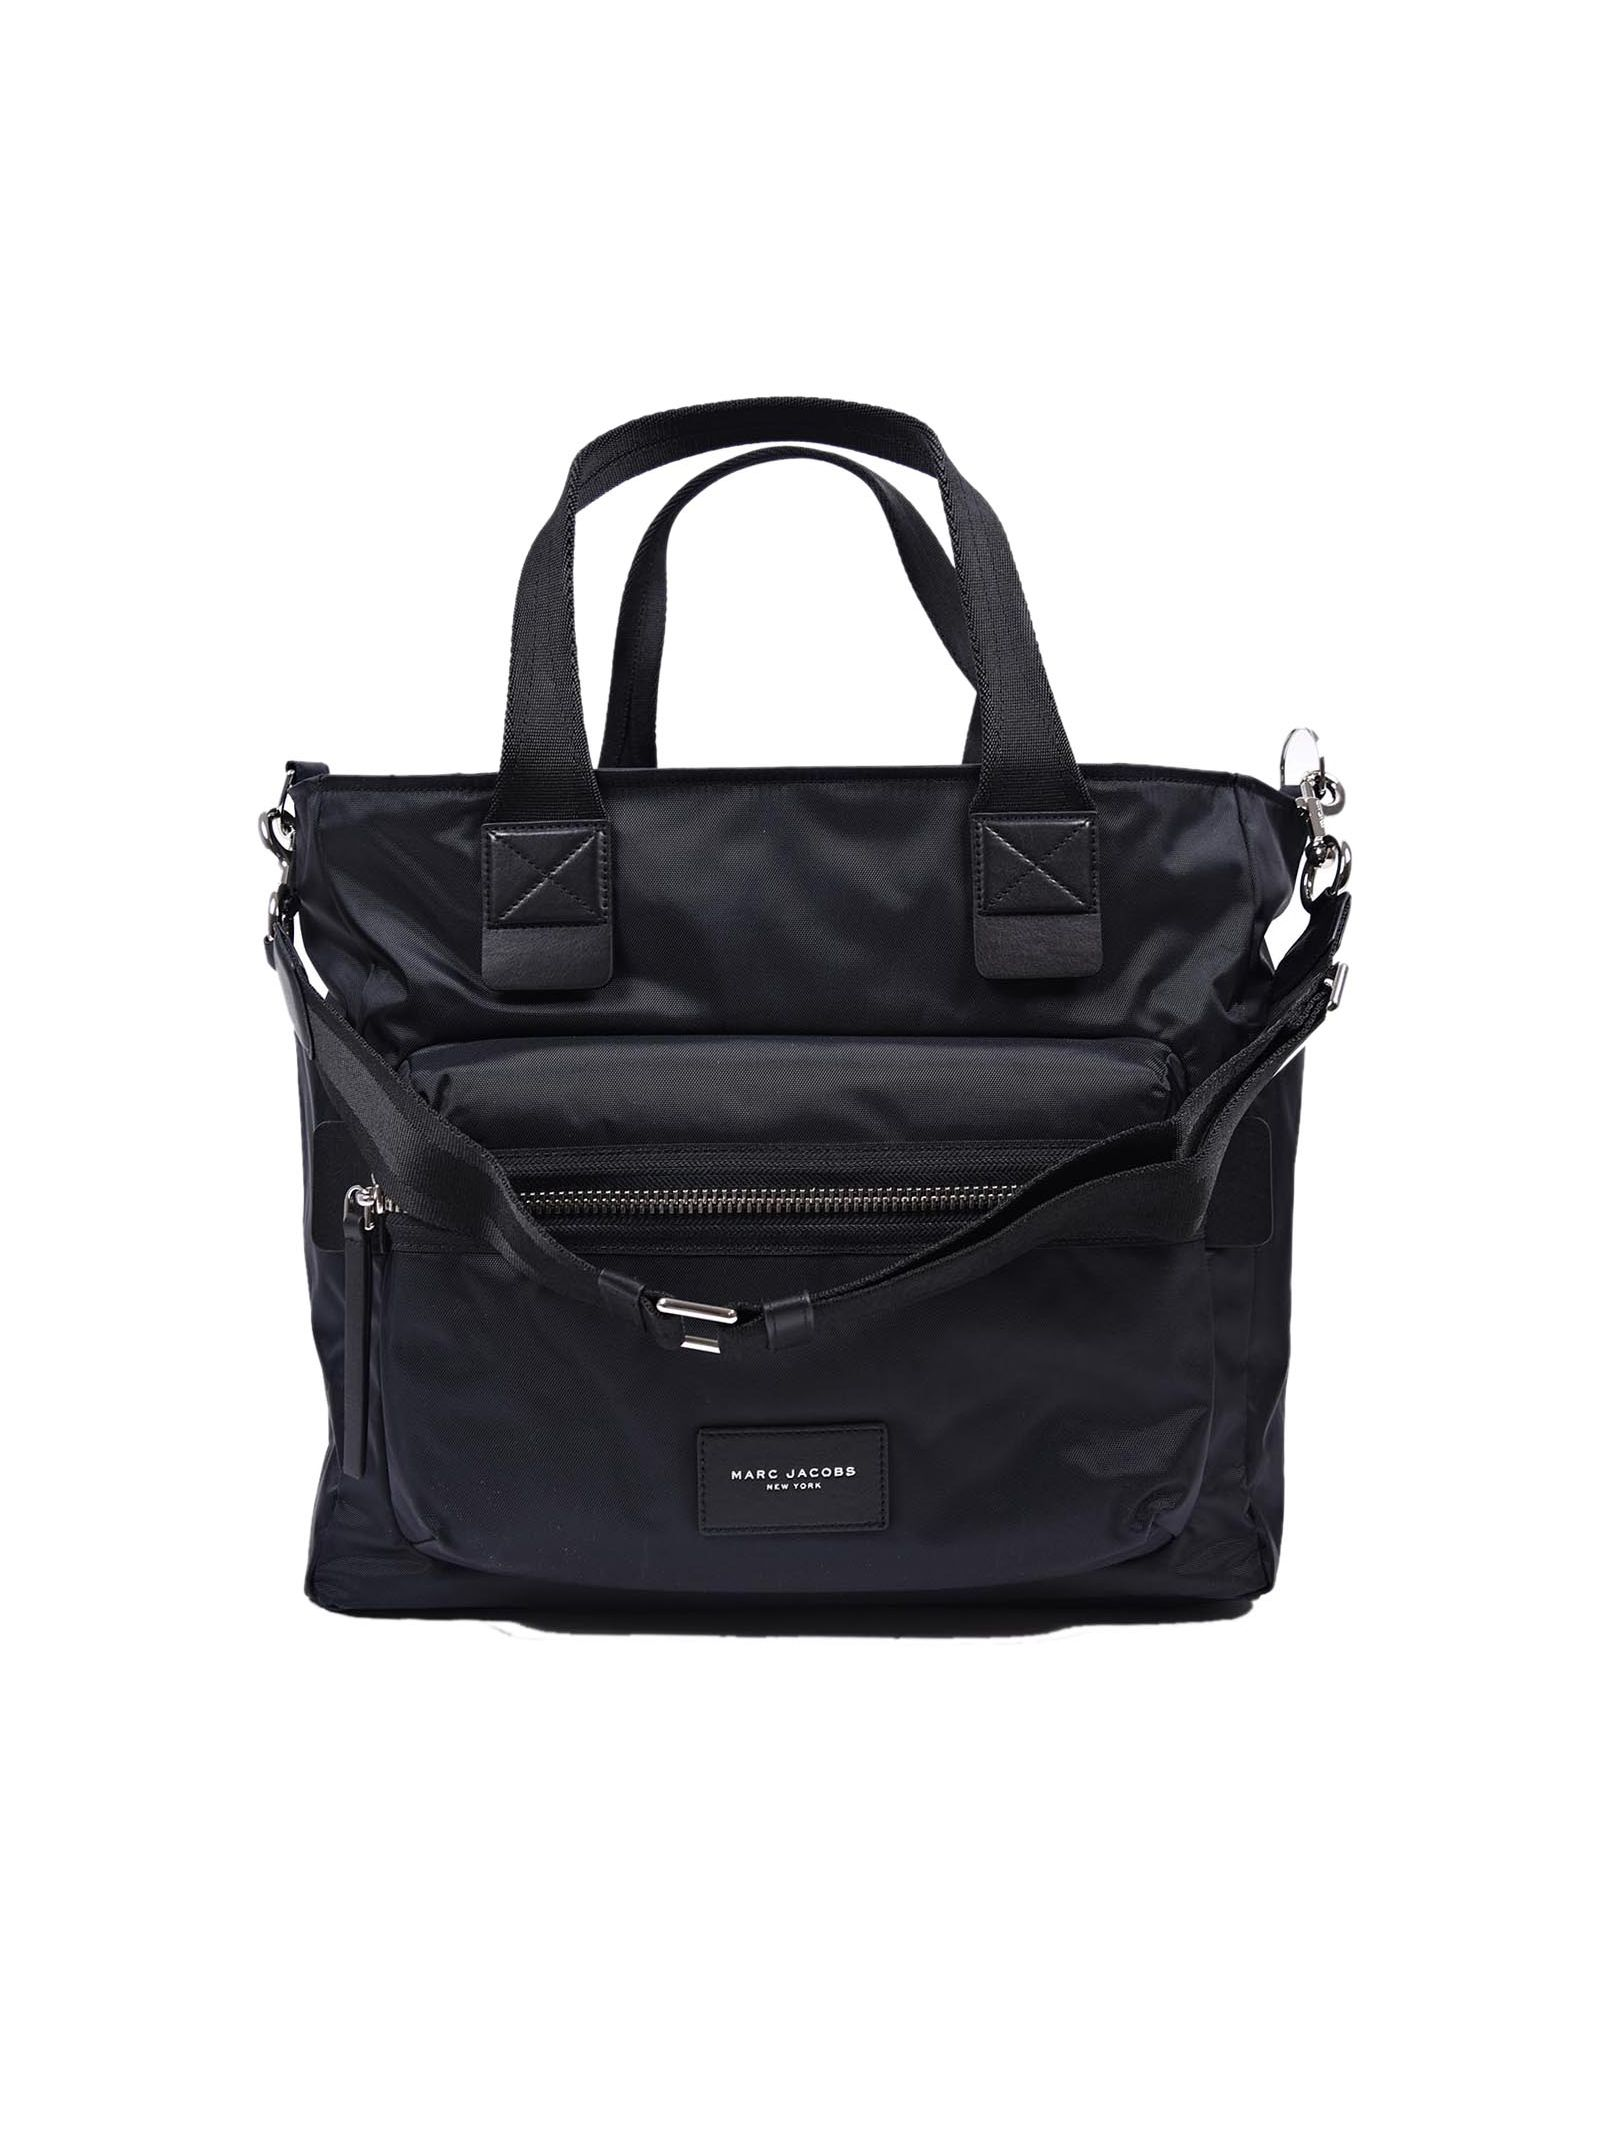 marc jacobs baby marc jacobs baby bag